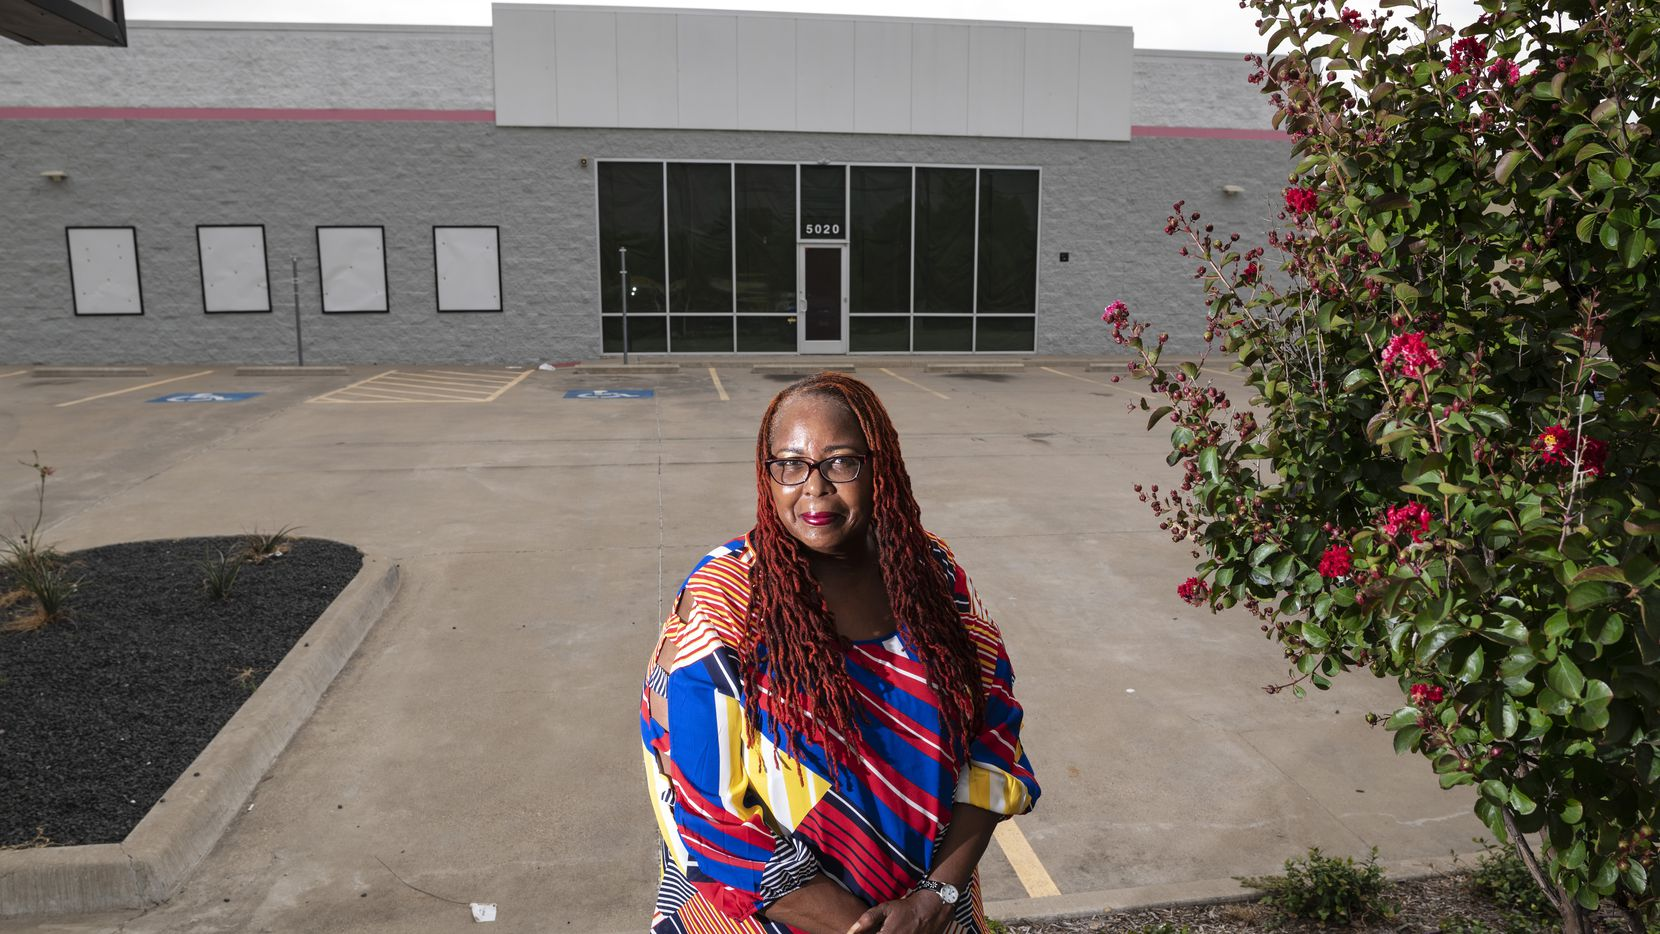 Cassandra Wesley, program manager of the soon-to-be Genesis Women's Shelter non-residential facility in southern Dallas, on July 19, 2021. The new facility will open this fall.